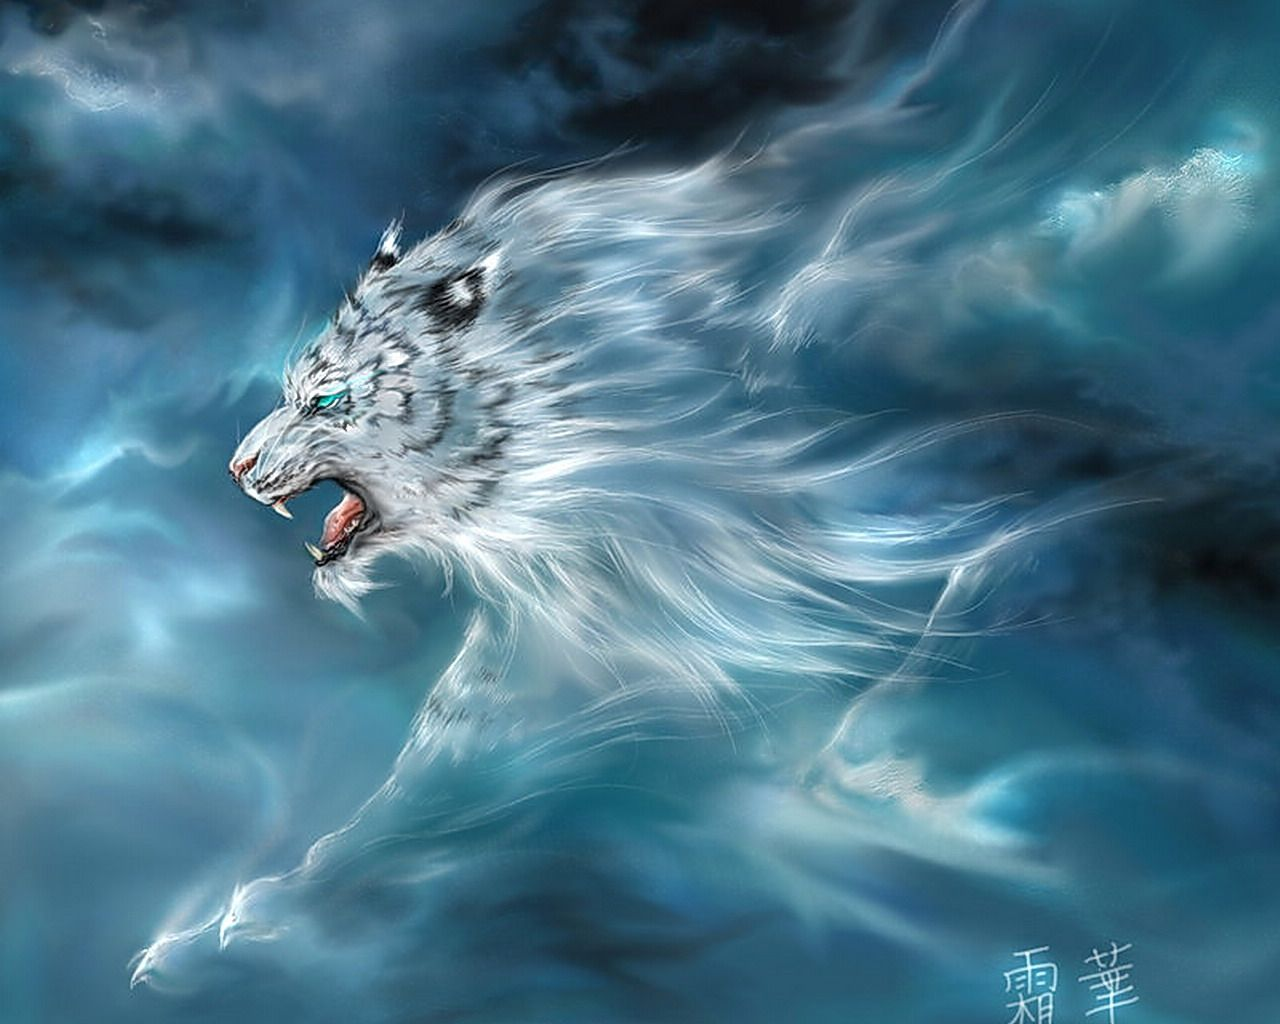 20 Tiger Hd Wallpapers Backgrounds Wallpaper Abyss Fantasy